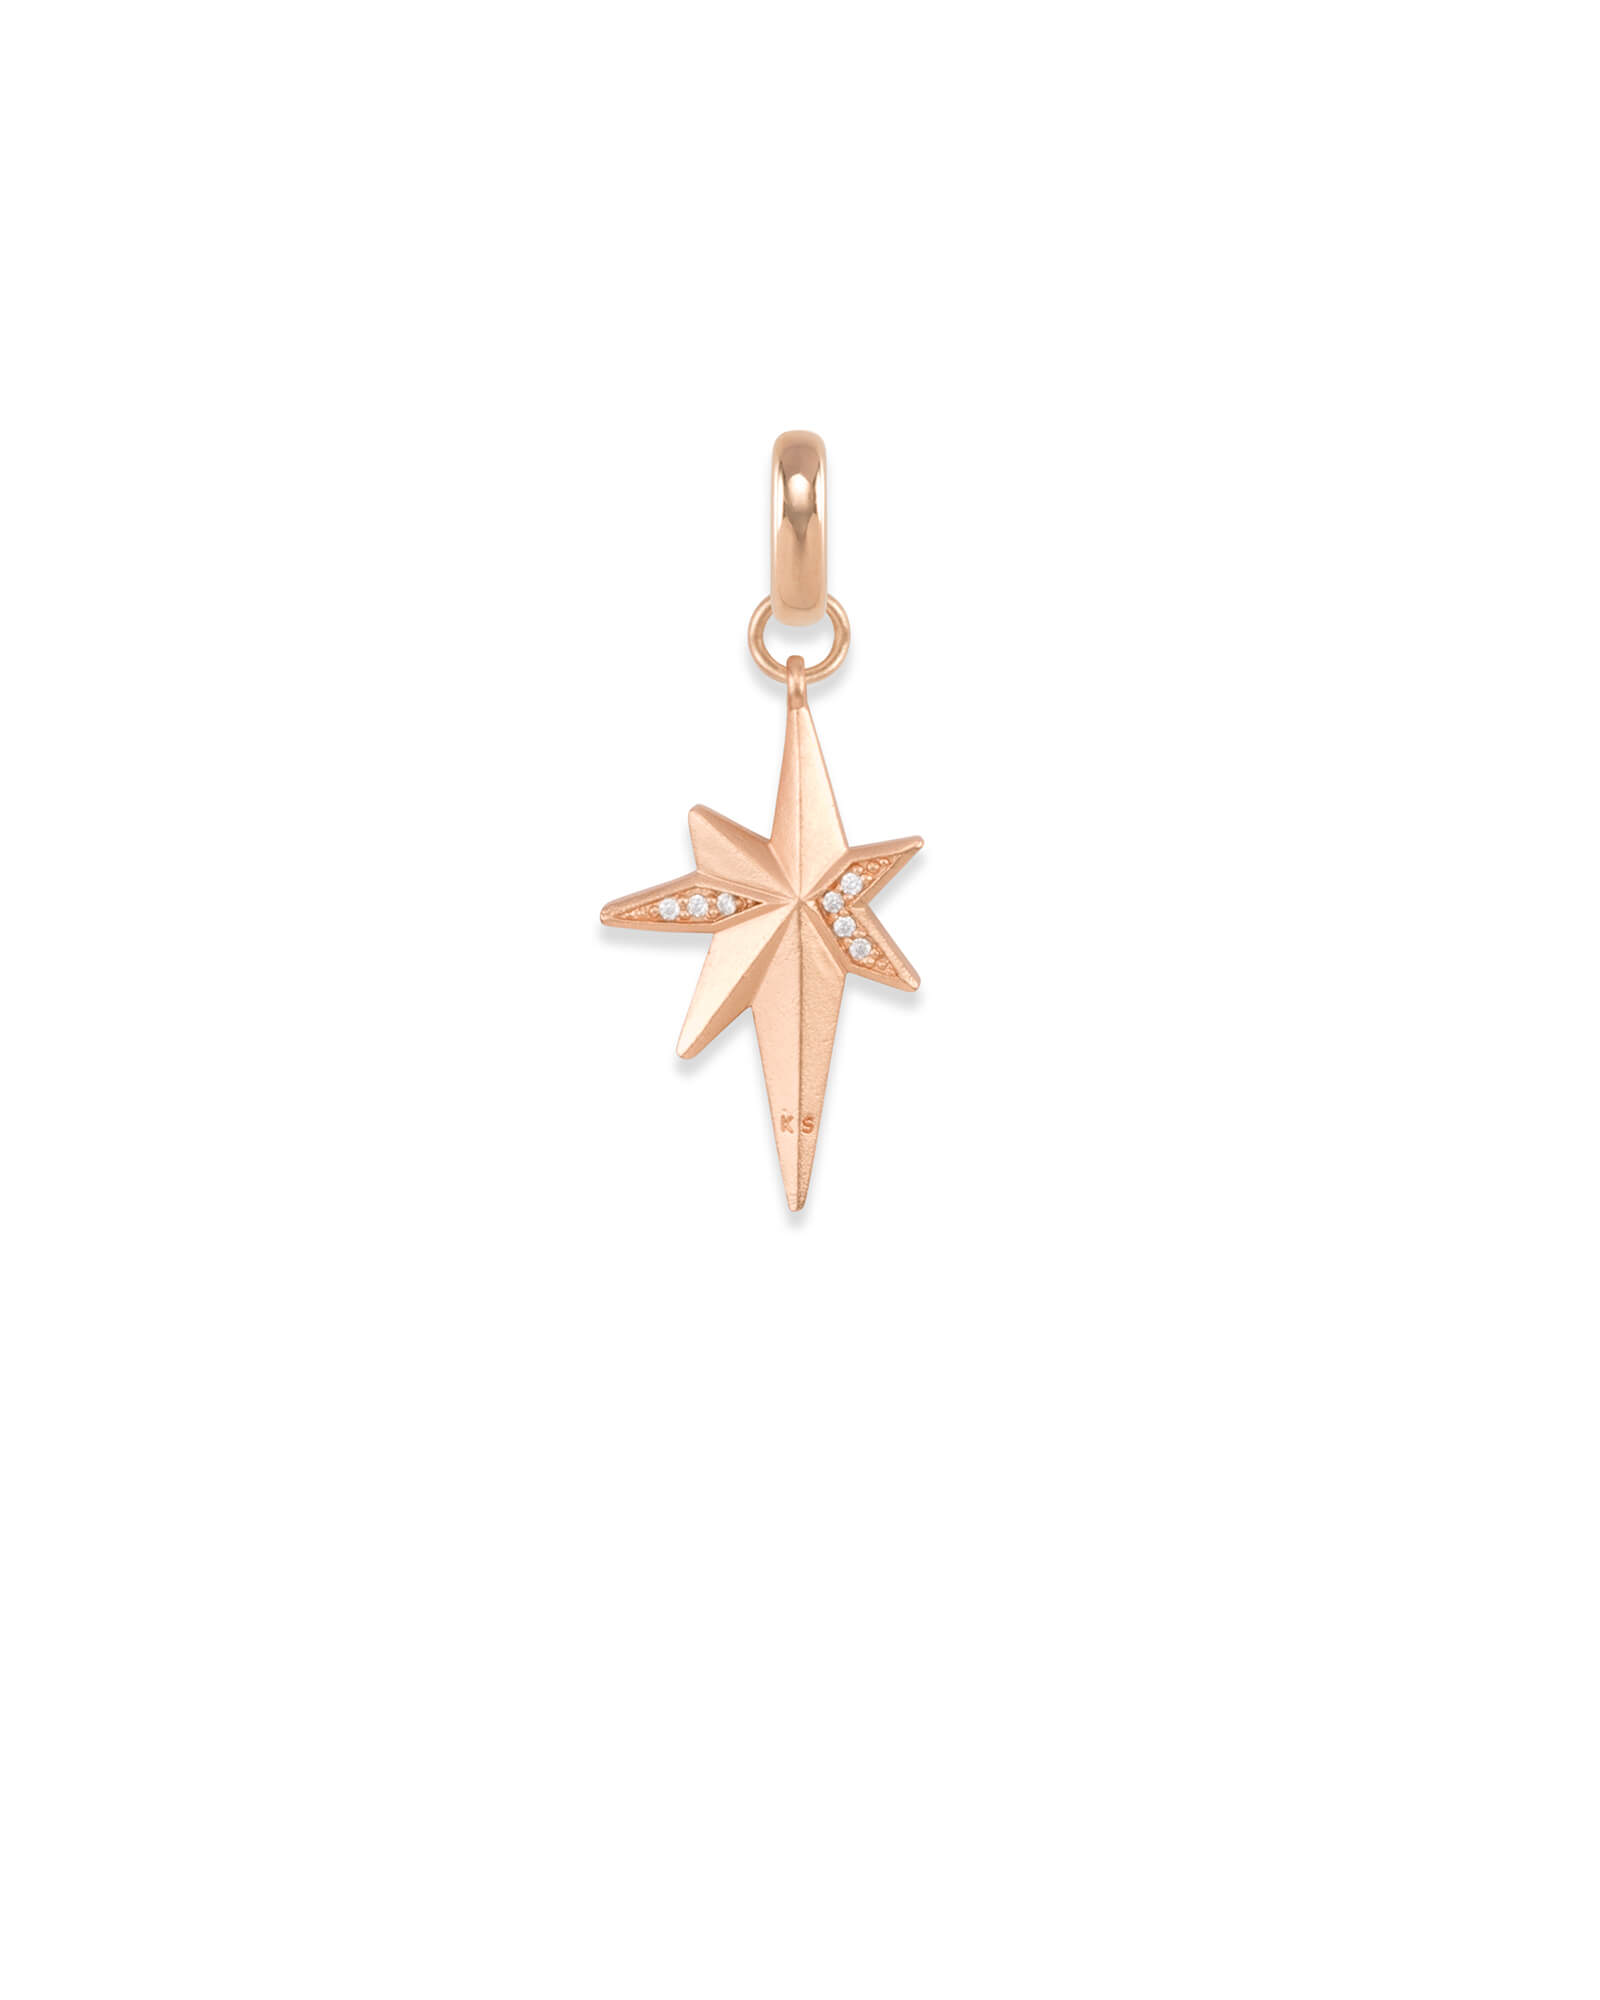 North Star Charm in Rose Gold